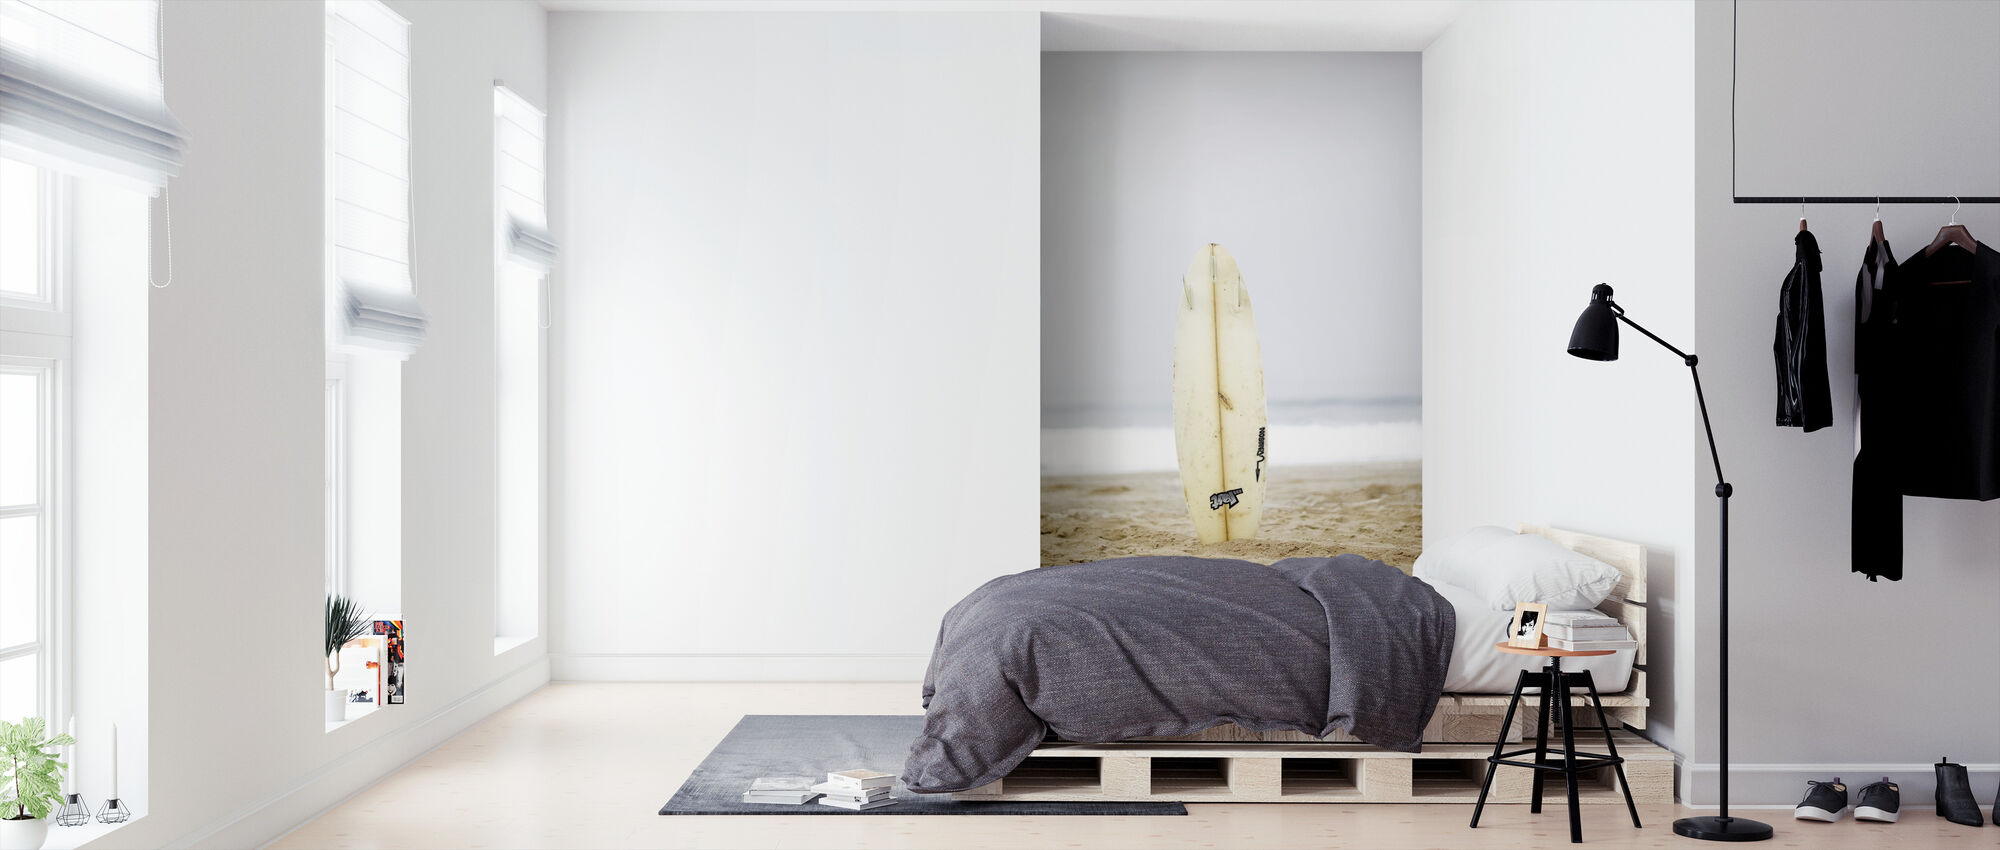 Surfboard - Wallpaper - Bedroom